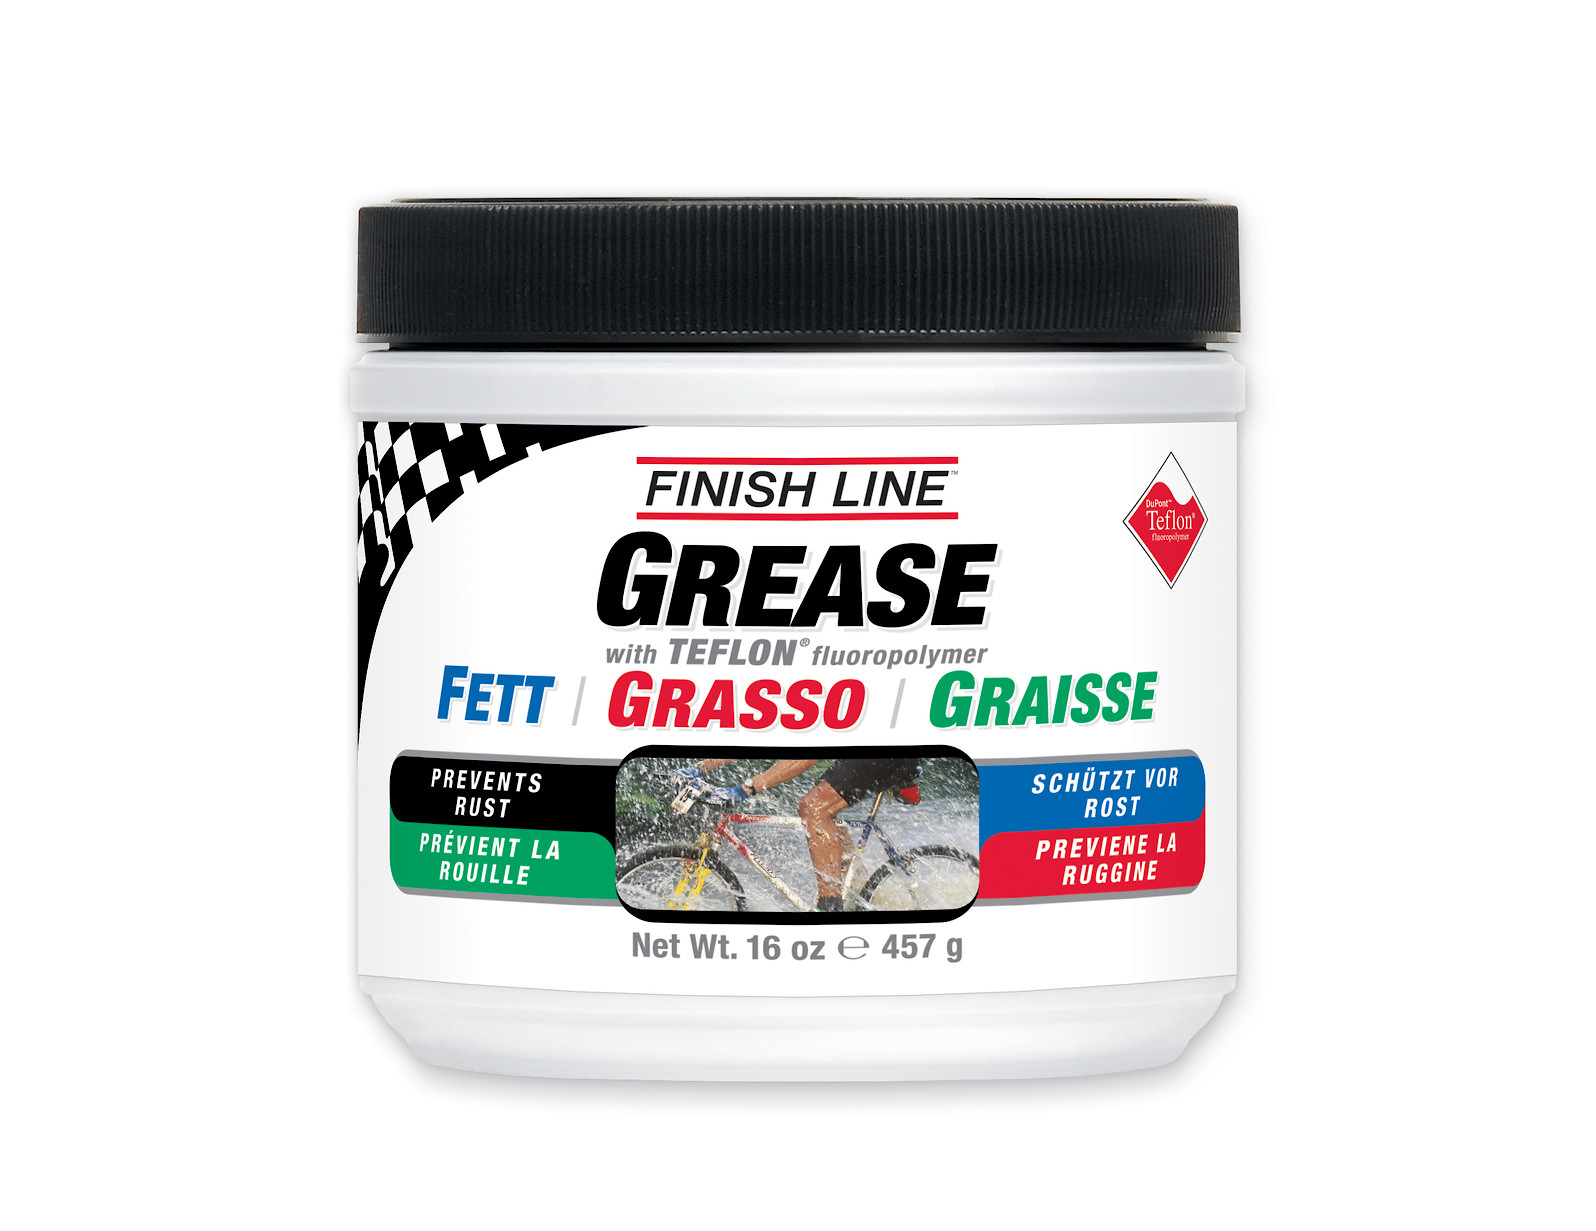 Finish Line Teflon Grease (1 lb / 16 oz tub)